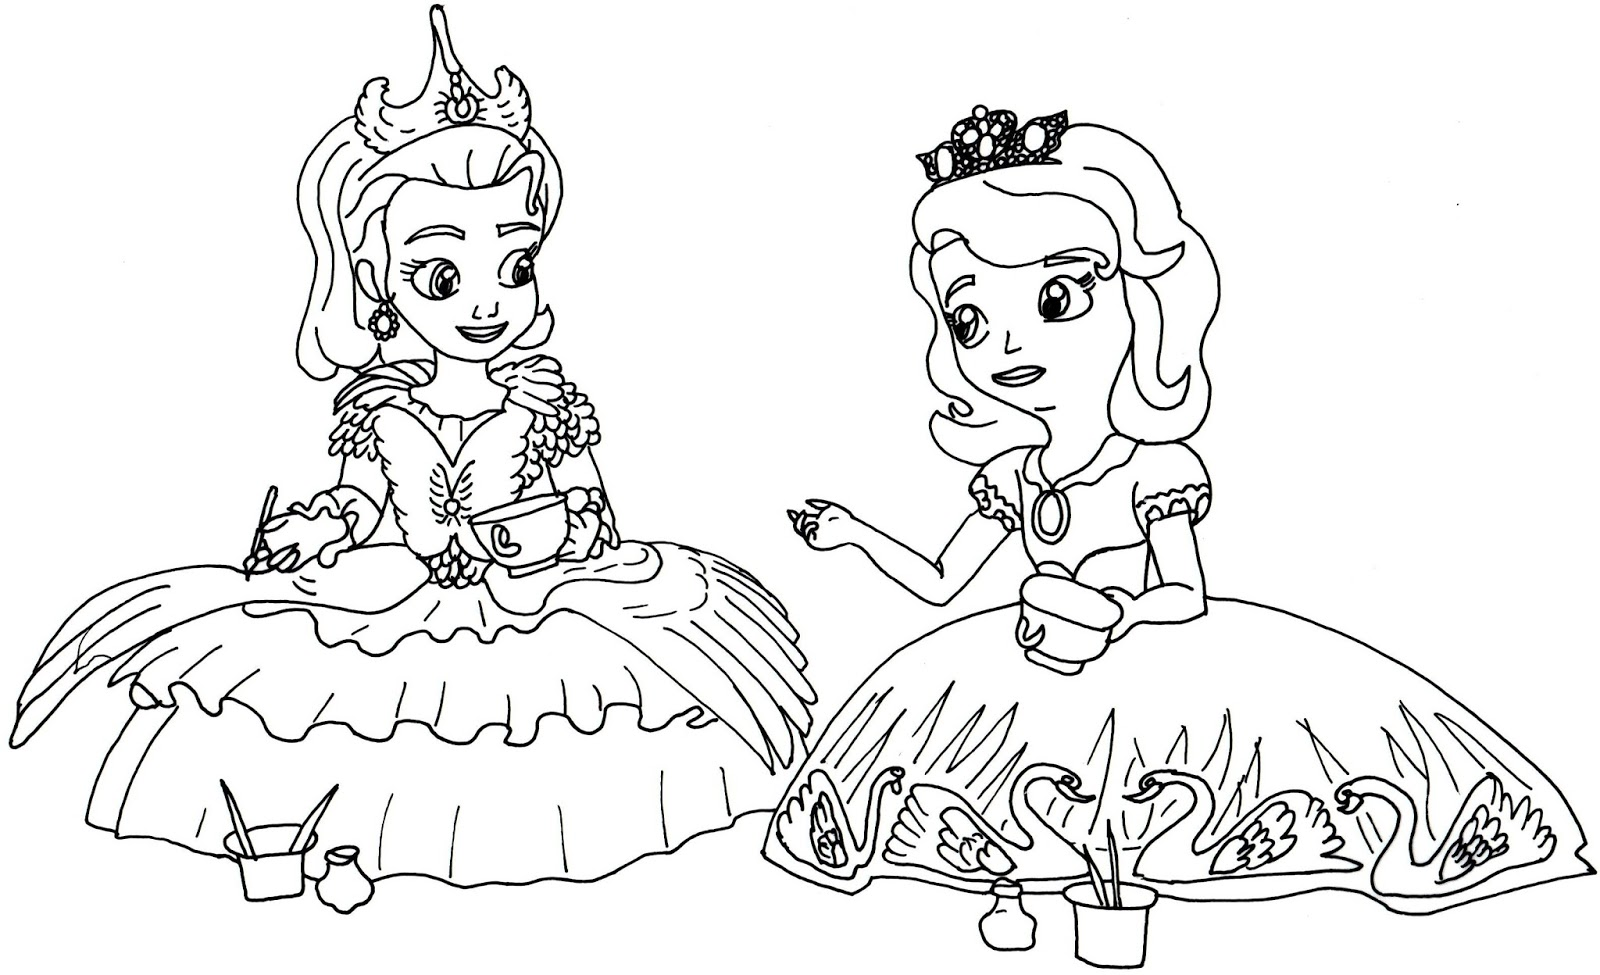 Sofia the first coloring pages december 2015 for Sofia the princess coloring pages